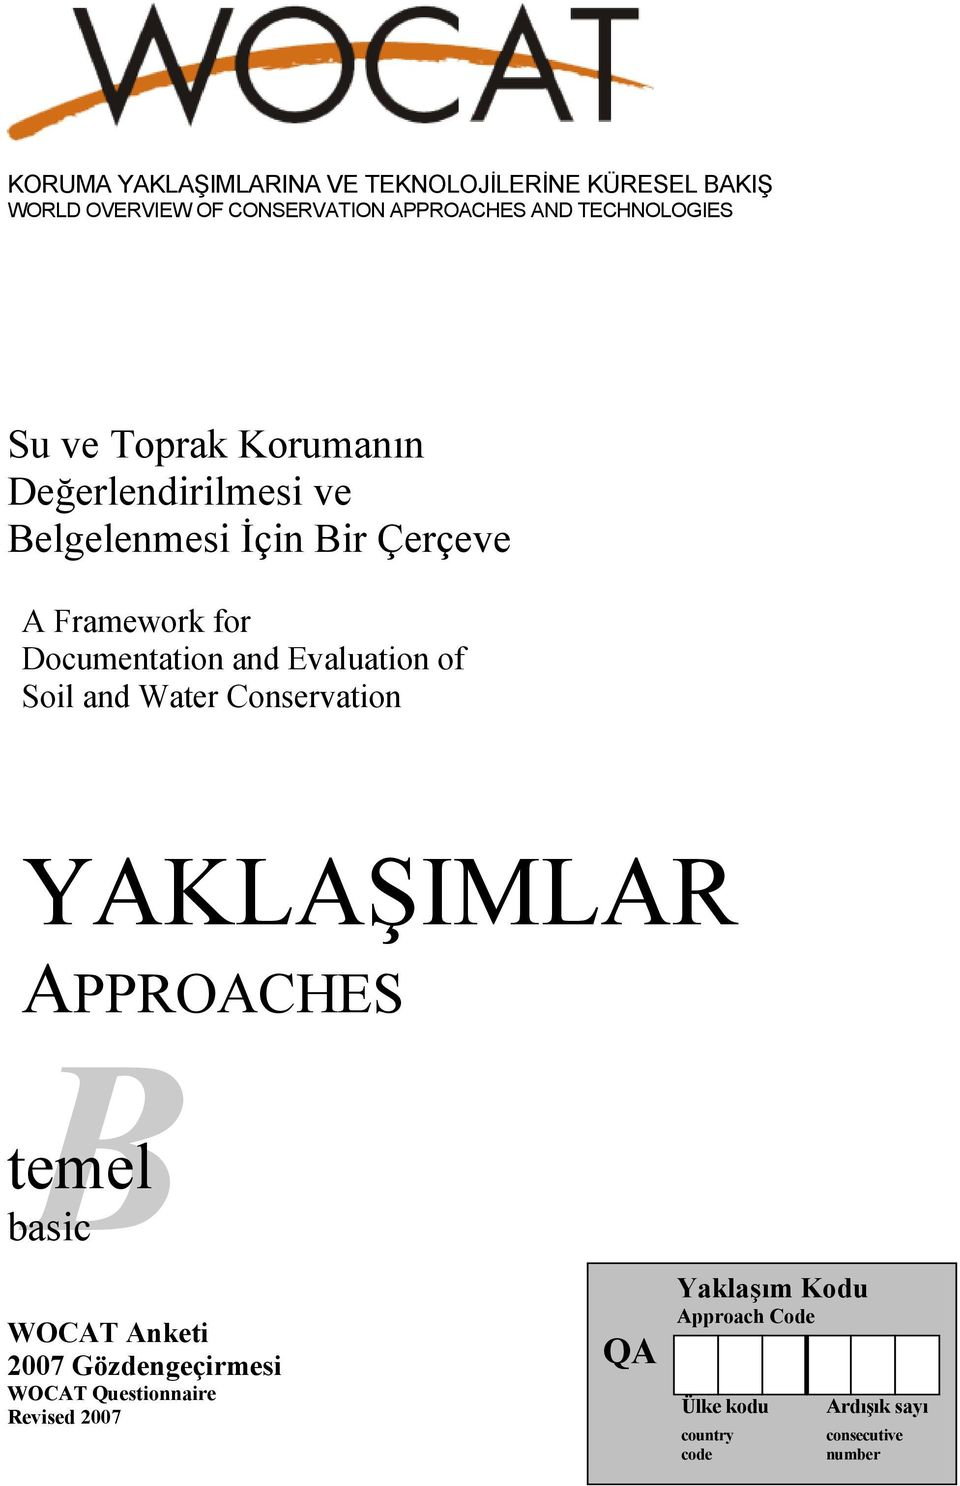 Evaluation of Soil and Water Conservation YAKLAŞIMLAR APPROACHES B temel basic WOCAT Anketi 2007 Gözdengeçirmesi